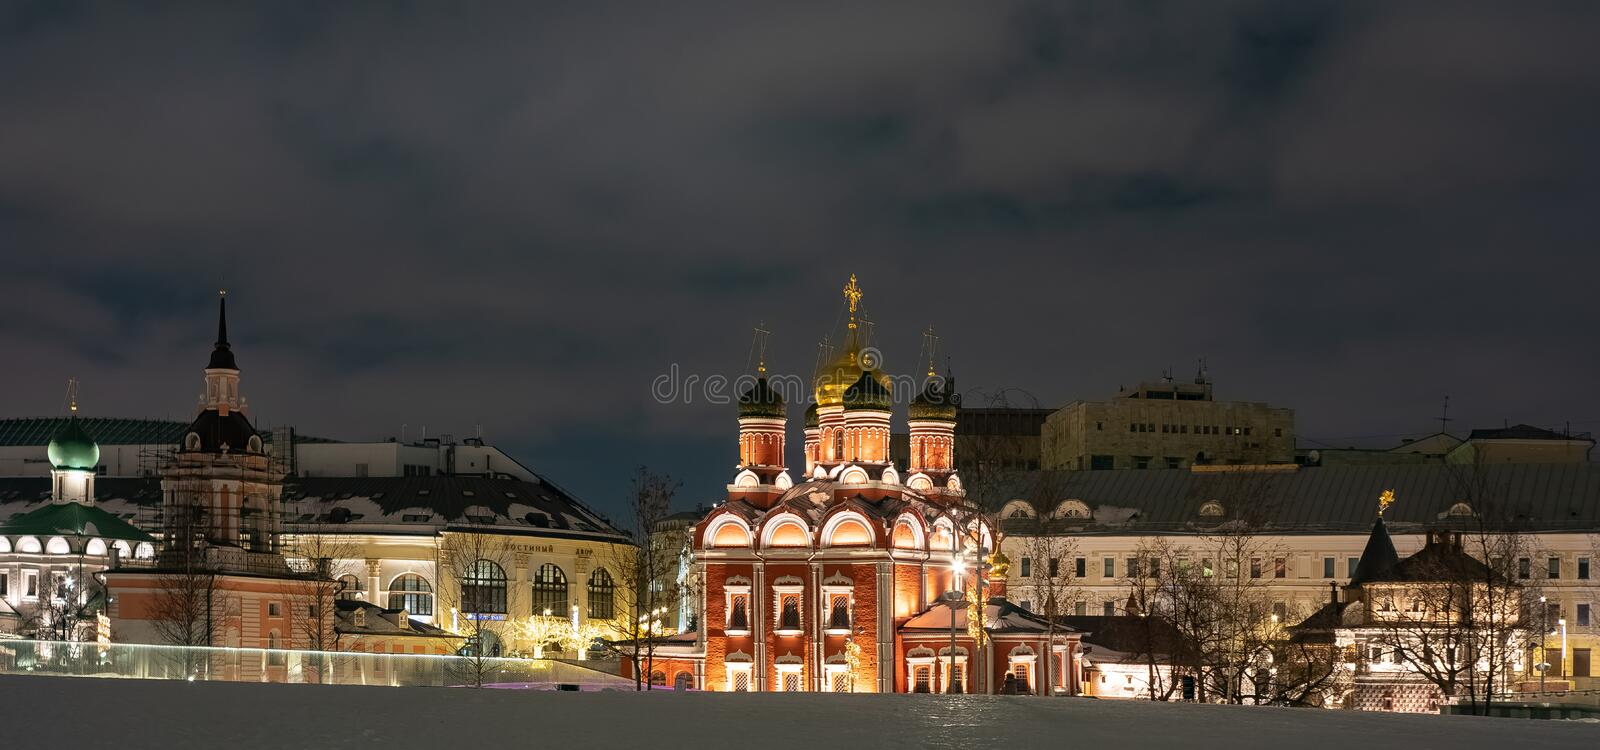 Moscow . Zaryadye Park,View of the Znamensky Cathedral,S t . Russia. royalty free stock photography